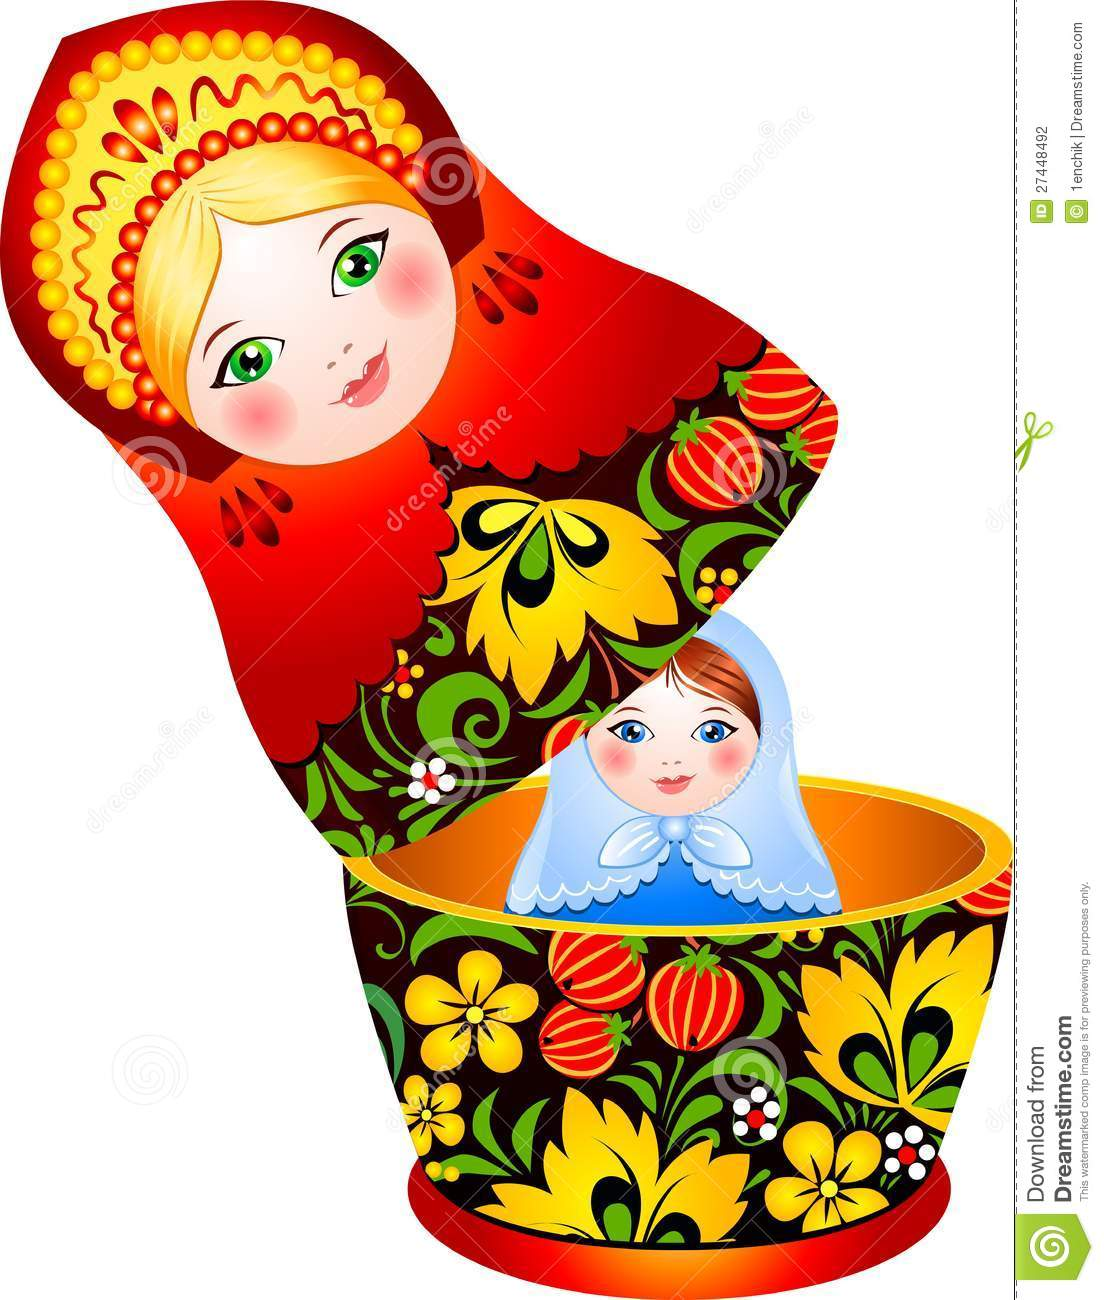 Poup e russe de matryoshka de tradition photographie stock for Poupee russe